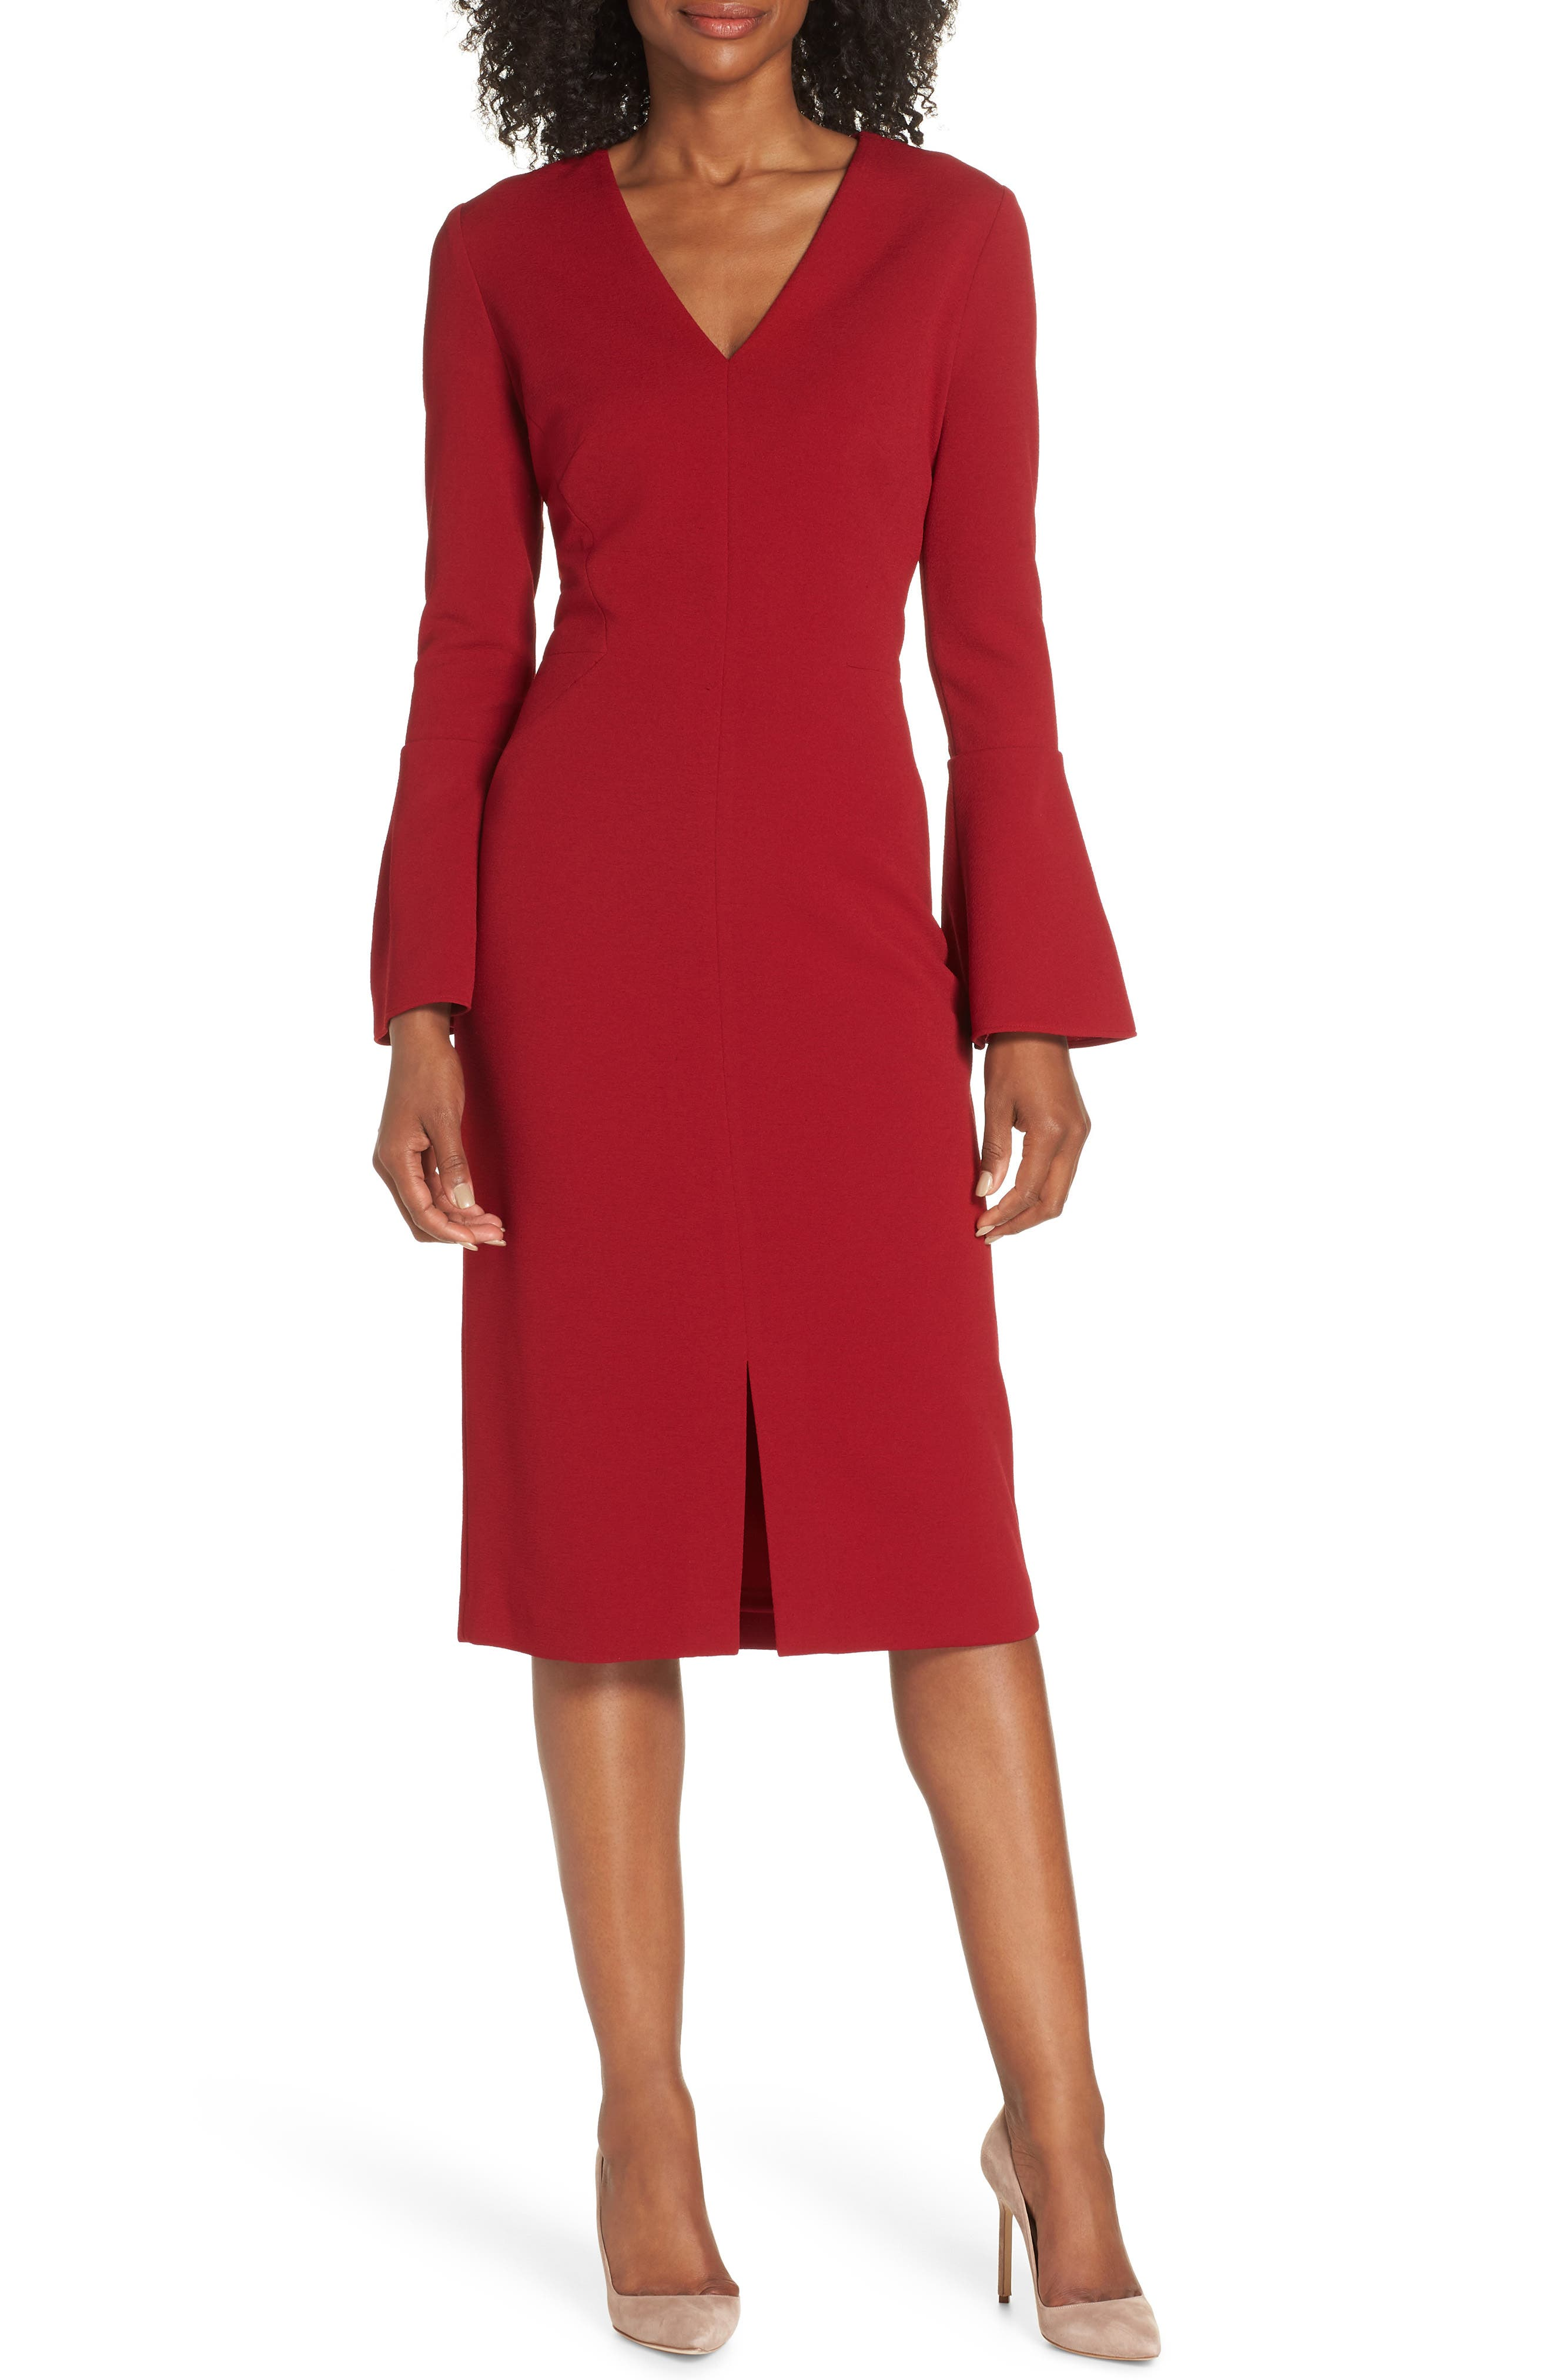 MAGGY LONDON Metro Knit Sheath Dress in Red